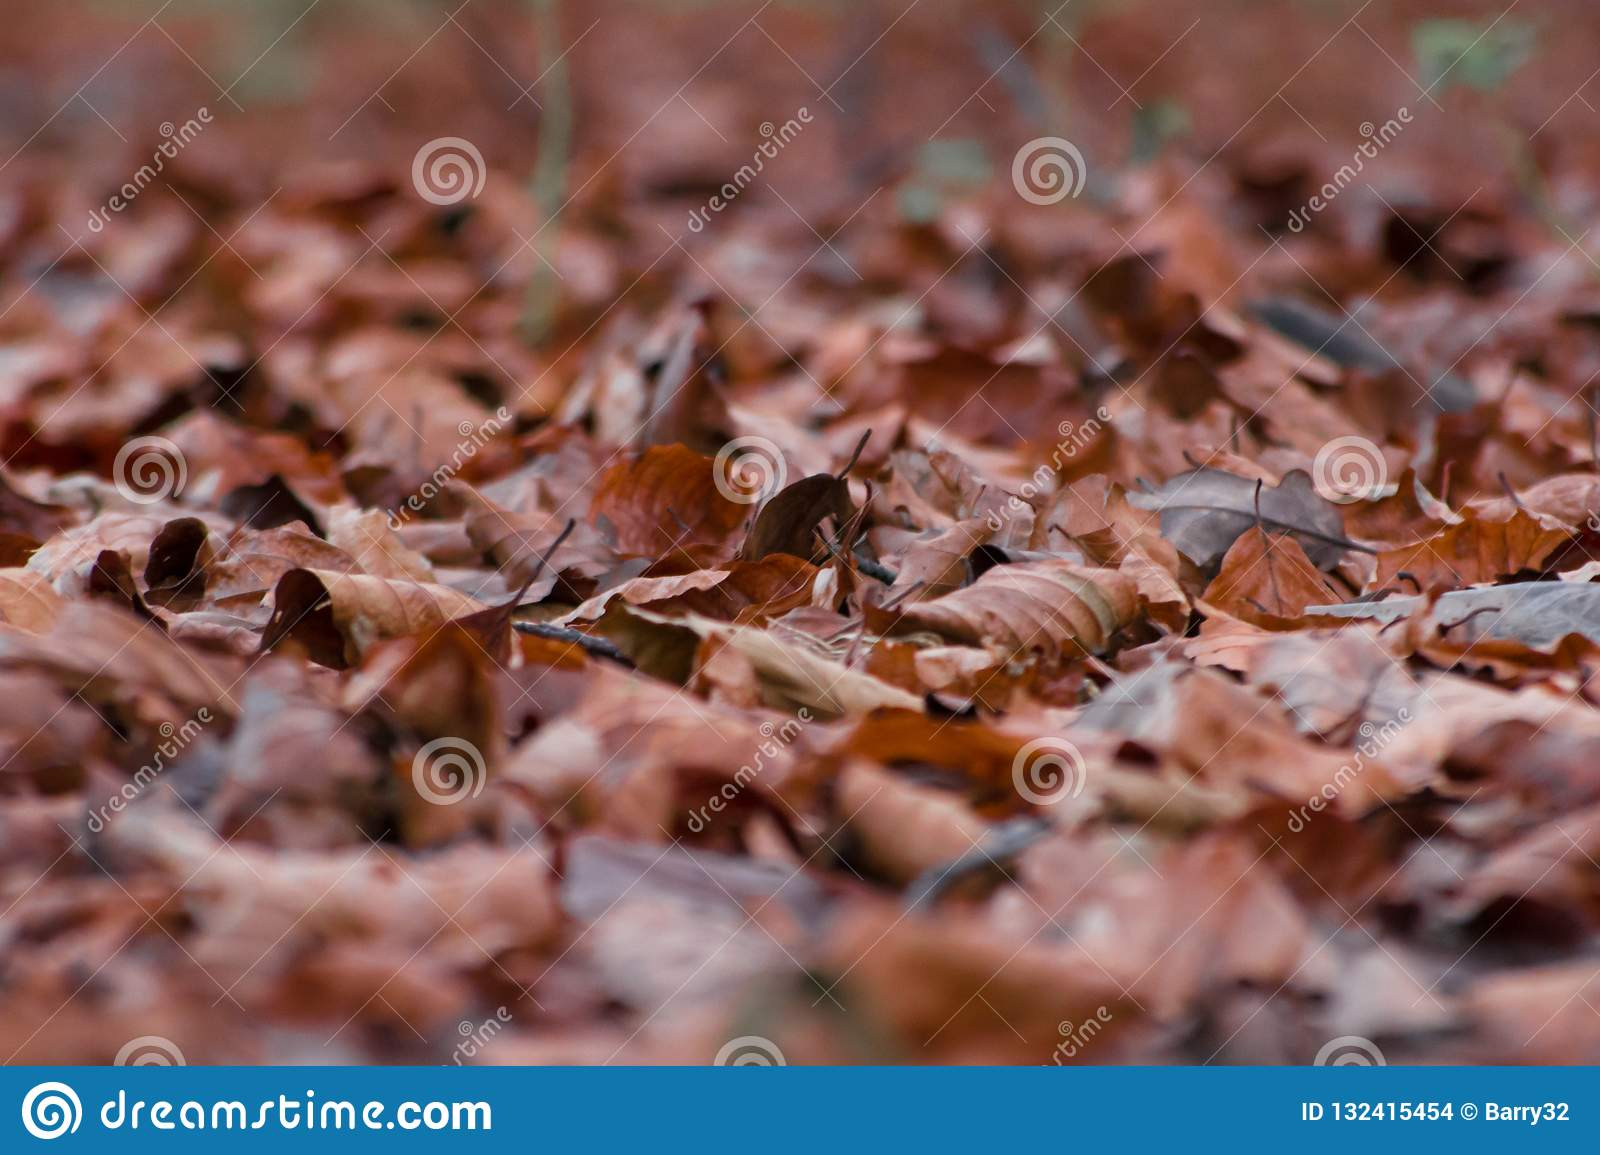 Dried brown leaves on forest floor in Autumn, shallow focus abstract